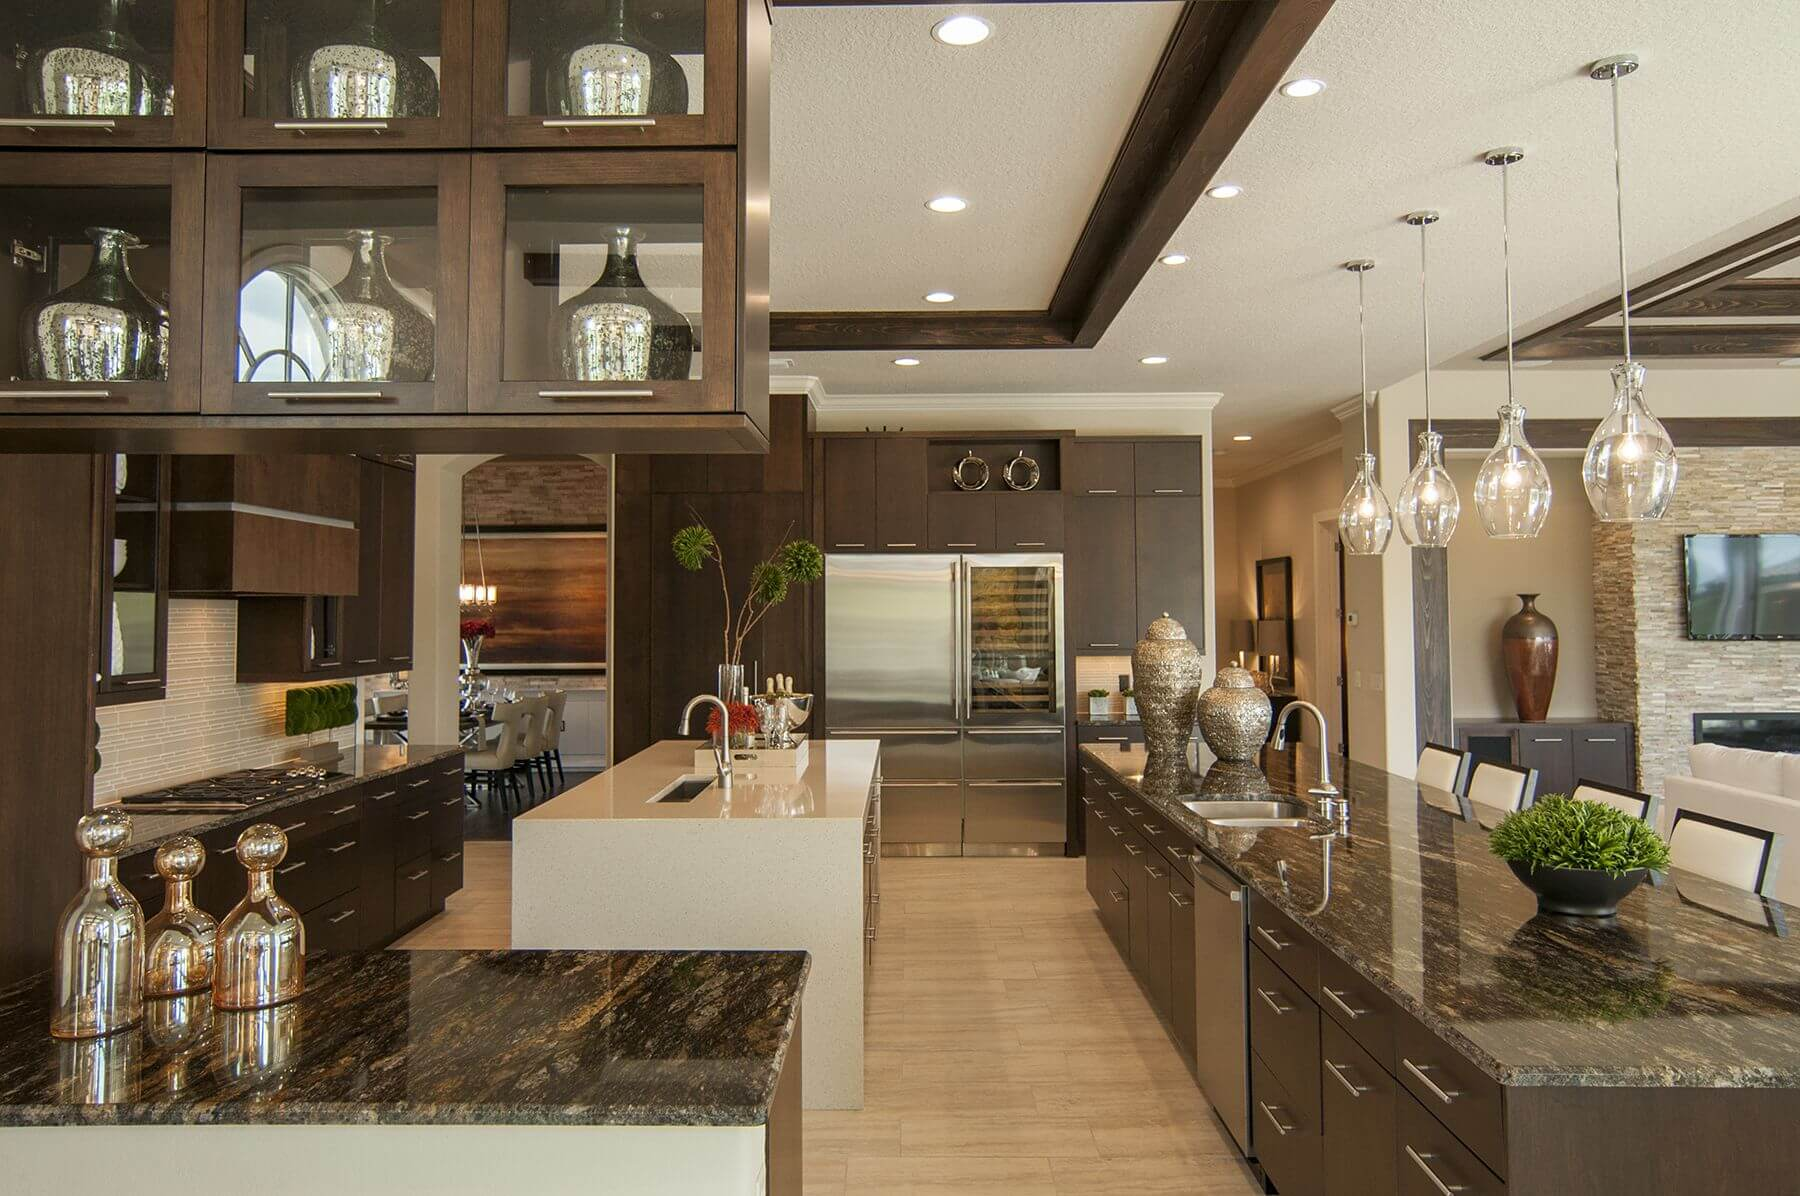 52 Dark Kitchens with Dark Wood OR Black Kitchen Cabinets (2019) Ultra High End Kitchen Cabinets on high end kitchen tools, high end kitchen pendant lights, high end storage cabinets, high end oak kitchens, high end kitchen appliances, high end kitchen canisters, high end railings, high end roofing, high end kitchen interiors, high end shelves, high end kitchen hoods, high end trim, high end kitchen carts, high end kitchen design, high end kitchen knobs, high end kitchen plans, high-end custom cabinets, high end kitchen chairs, high end kitchen tiles, high end kitchen showroom,